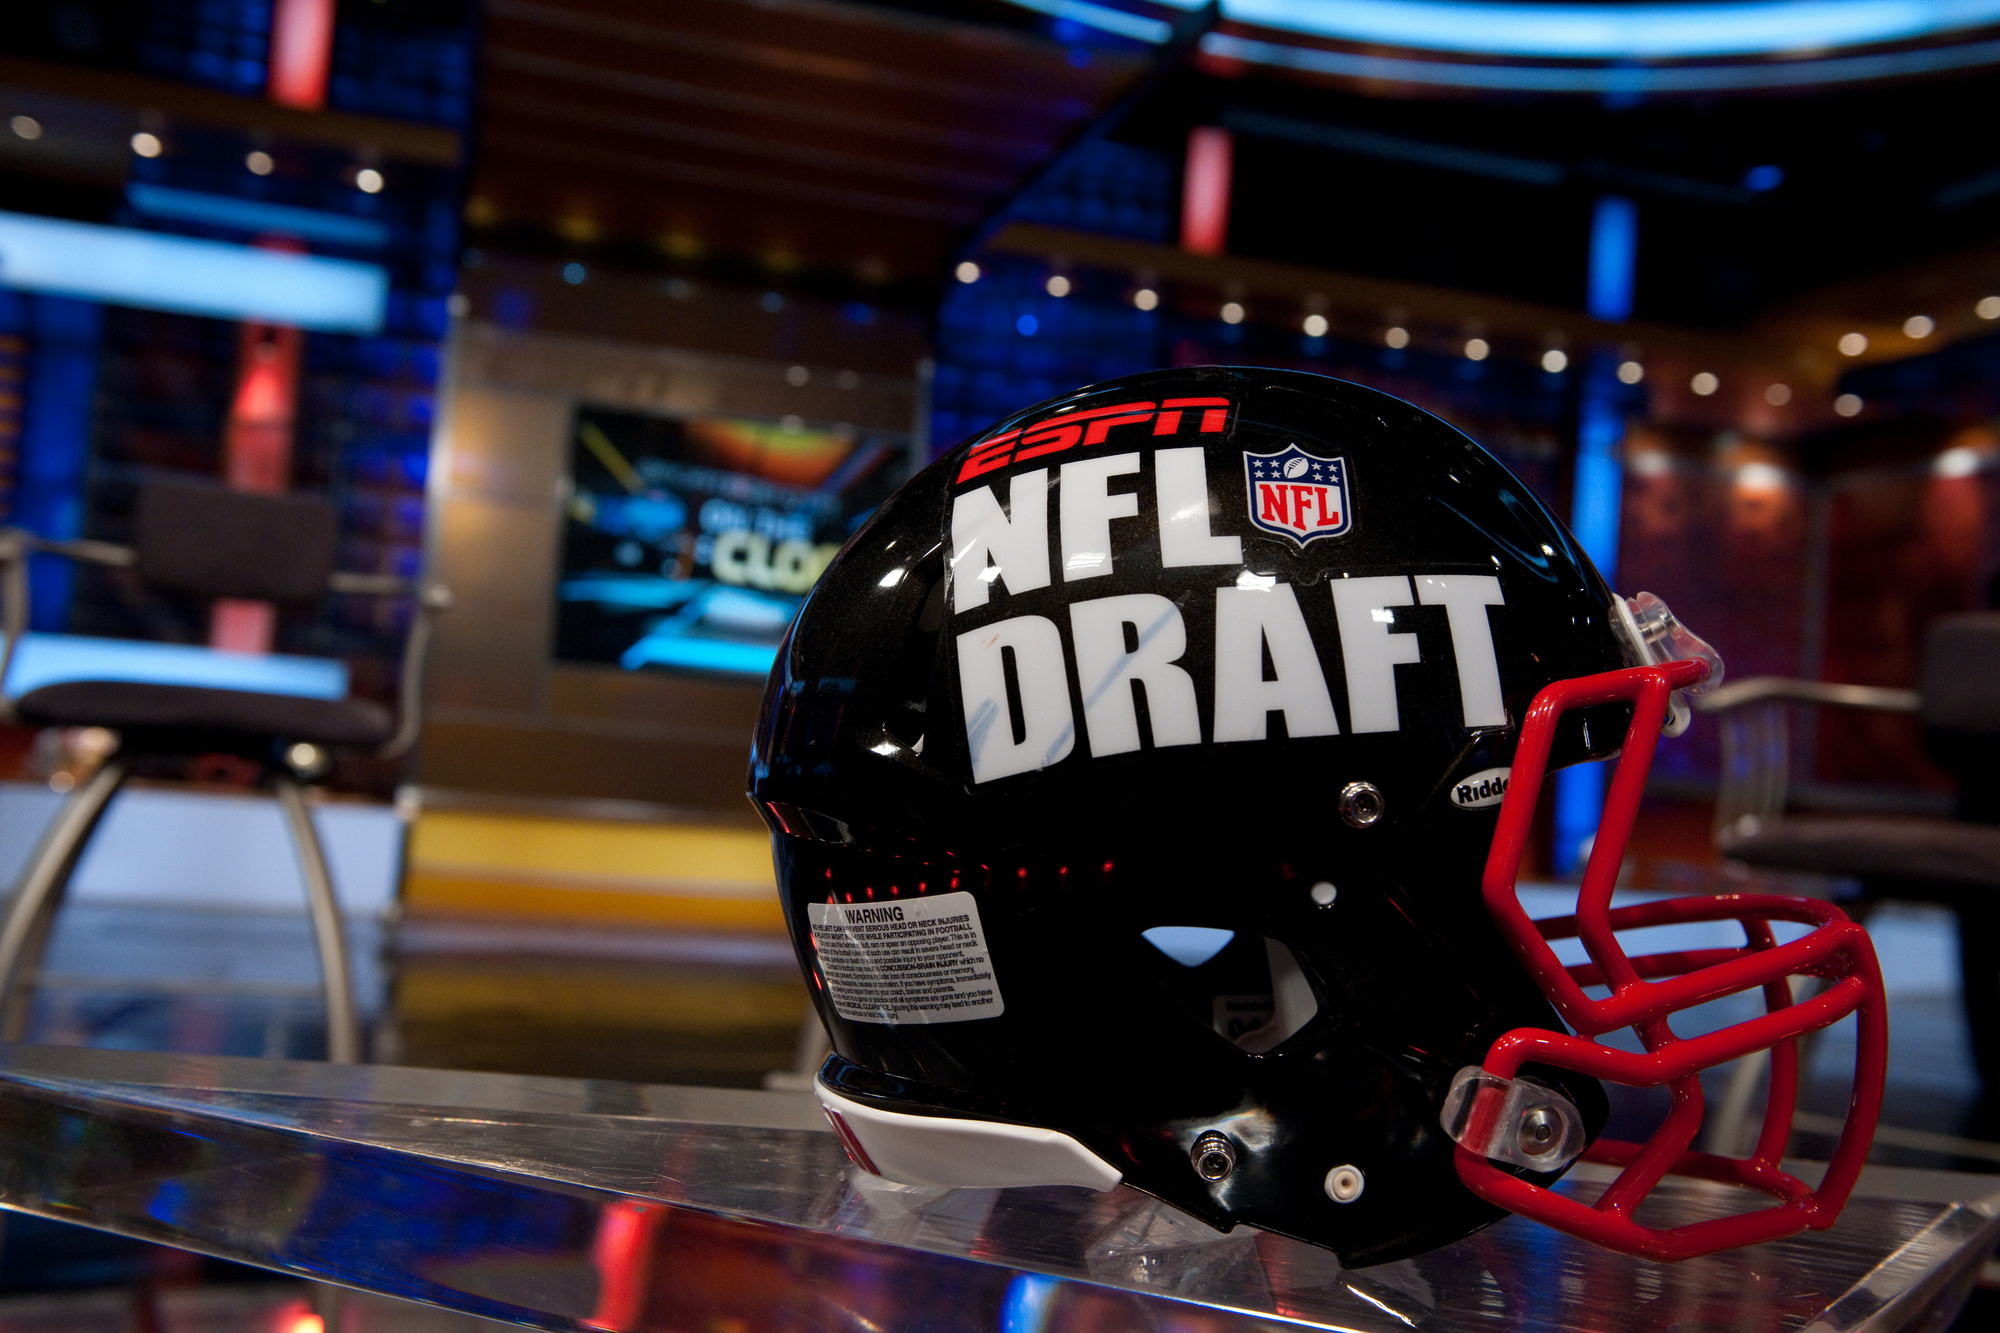 nfl saturday night game nfl draft espn